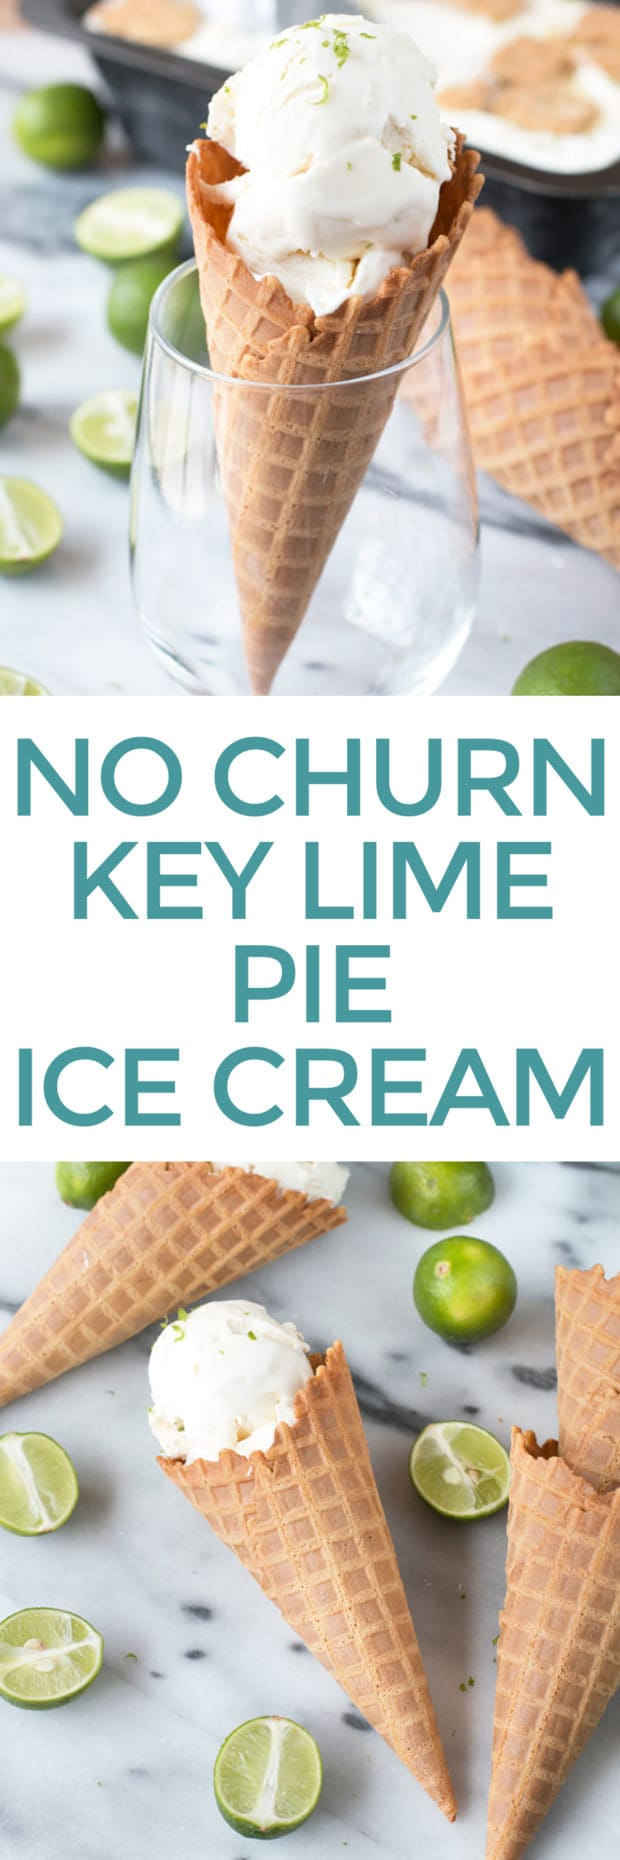 No Churn Key Lime Pie Ice Cream | cakenknife.com #dessert #icecream